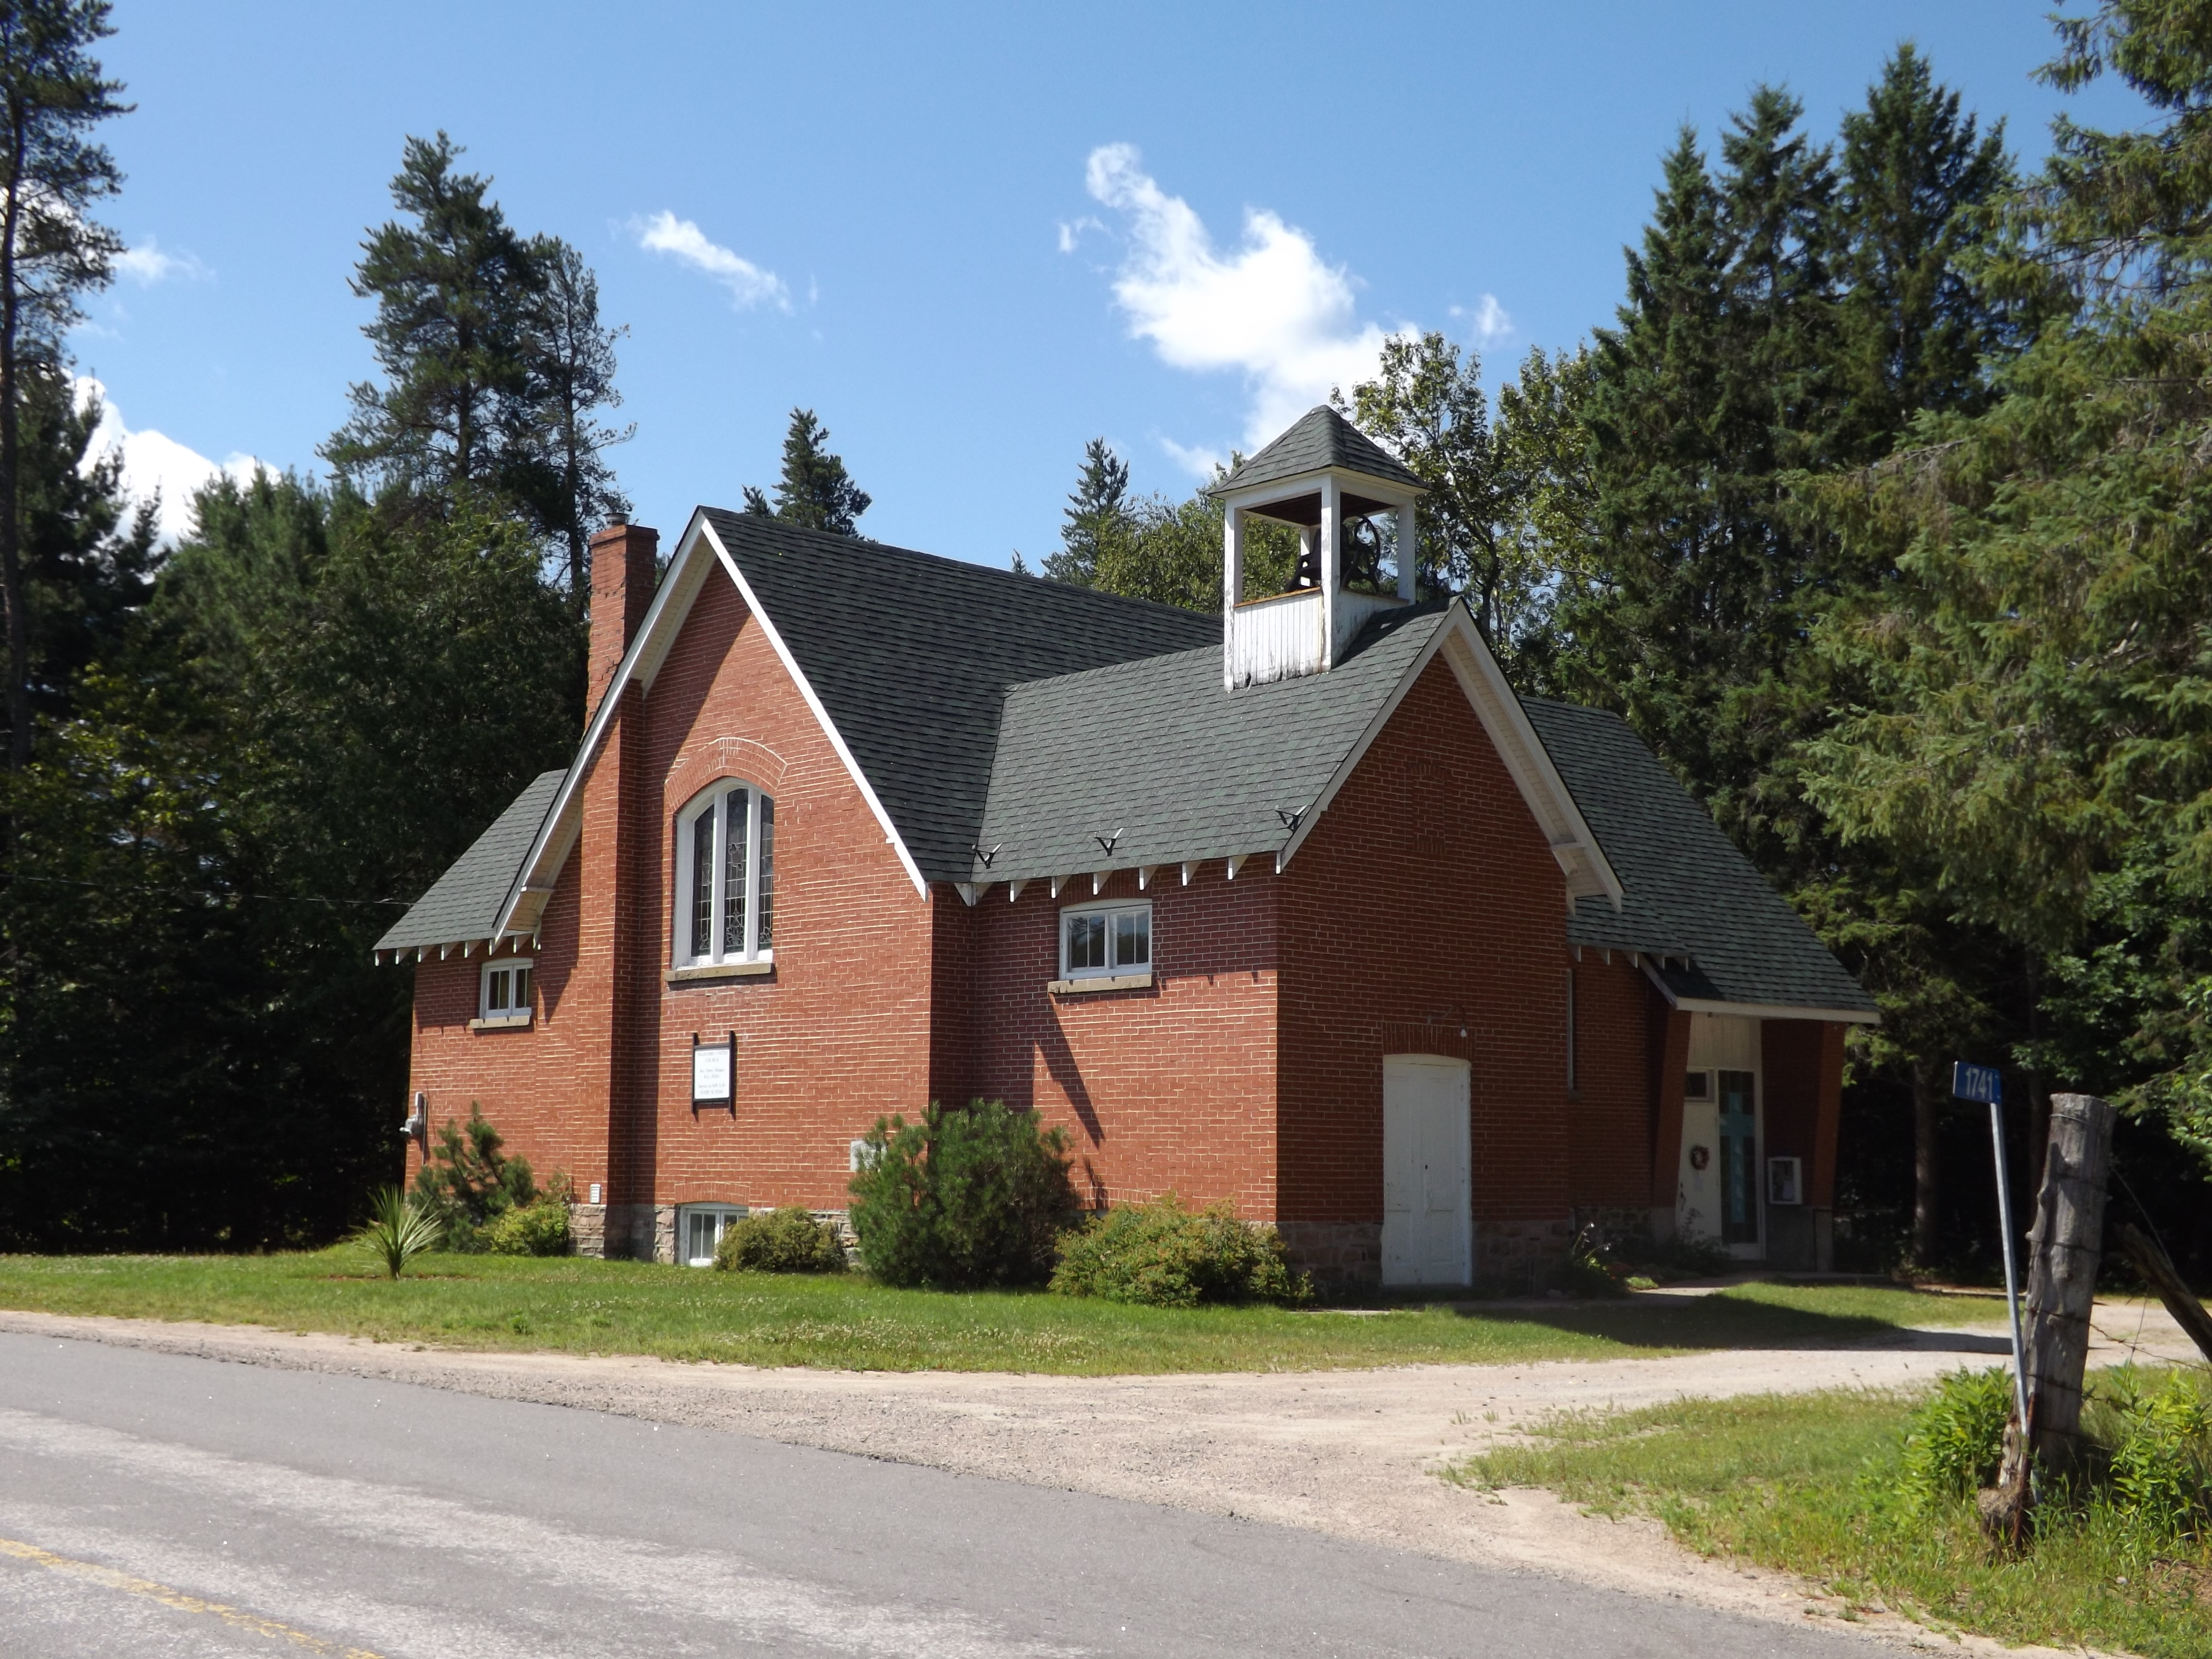 Photo of Ingoldsby United Church in Minden, Ontario, Canada